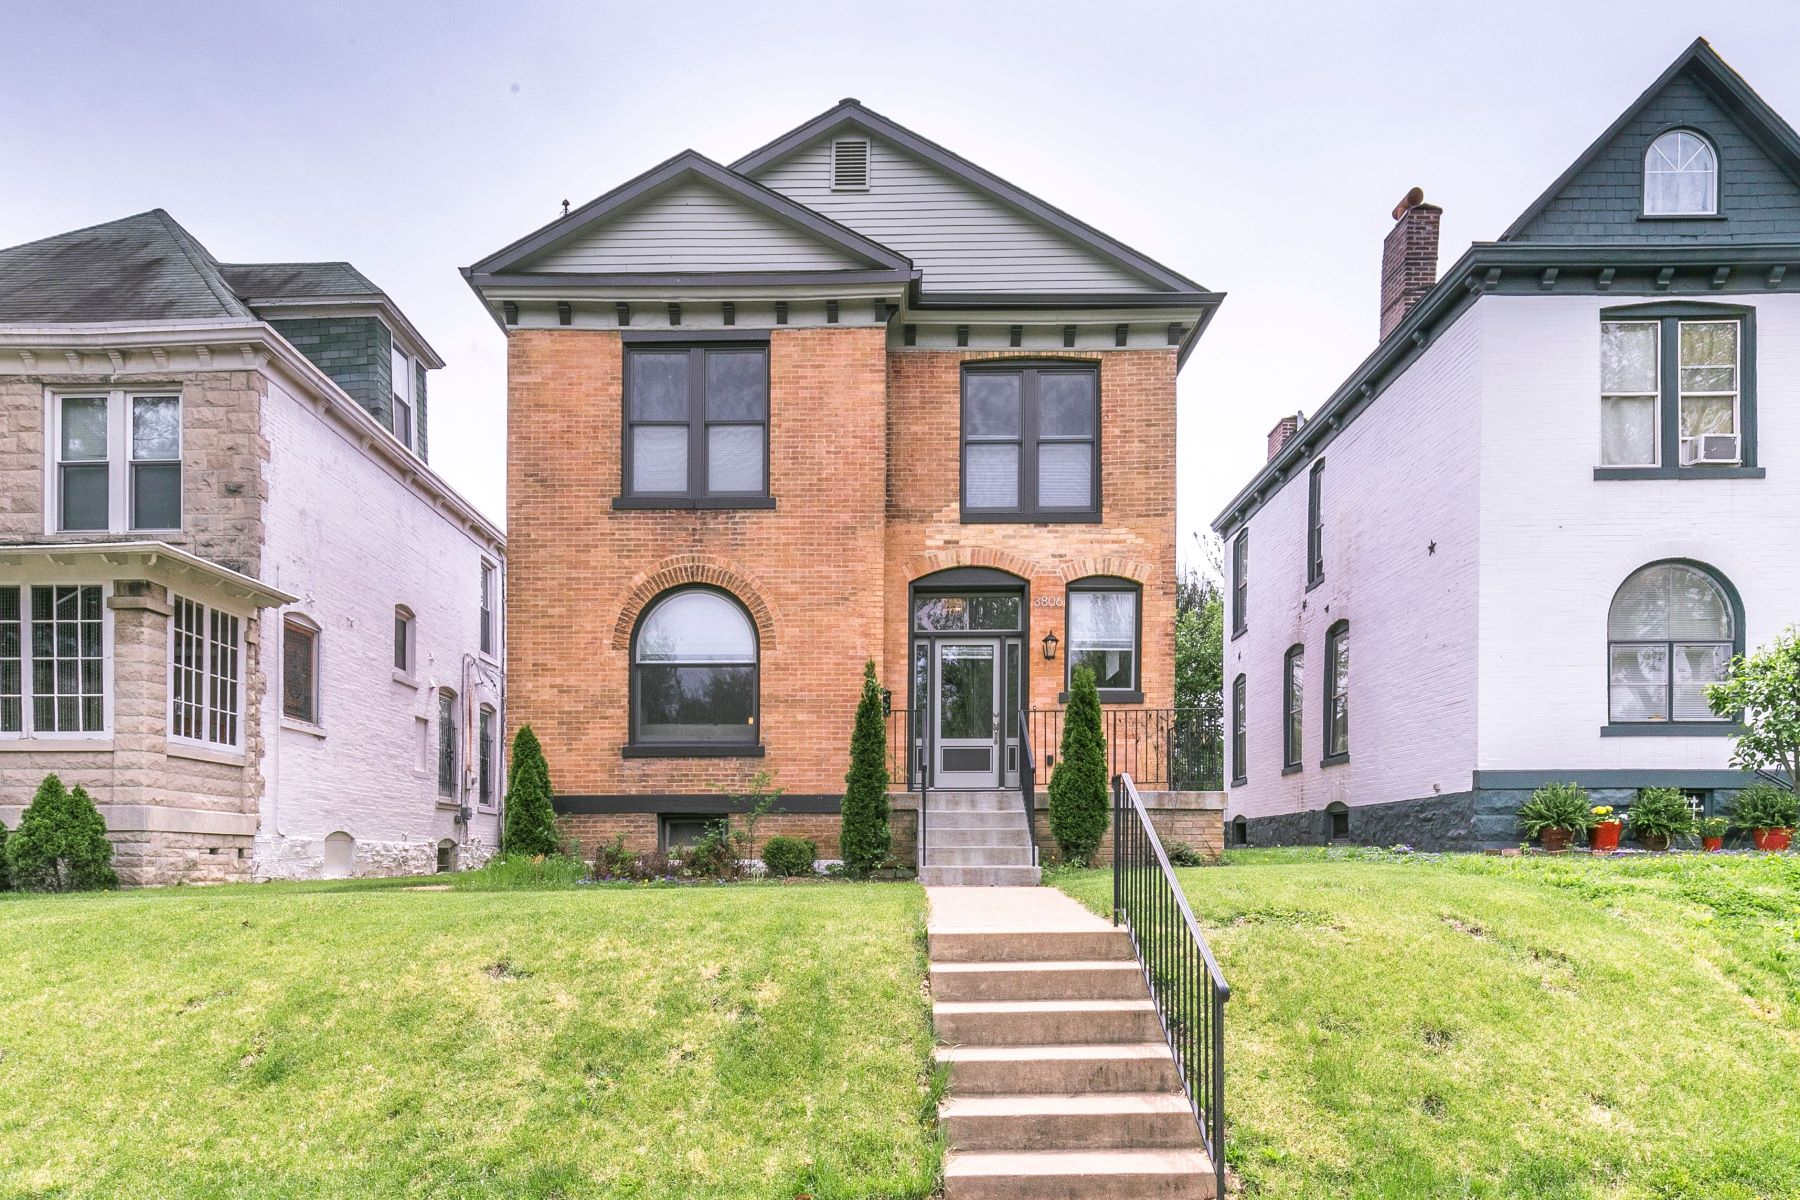 Single Family Homes for Sale at Renovated, Park View Home 3806 Arsenal Street St. Louis, Missouri 63116 United States